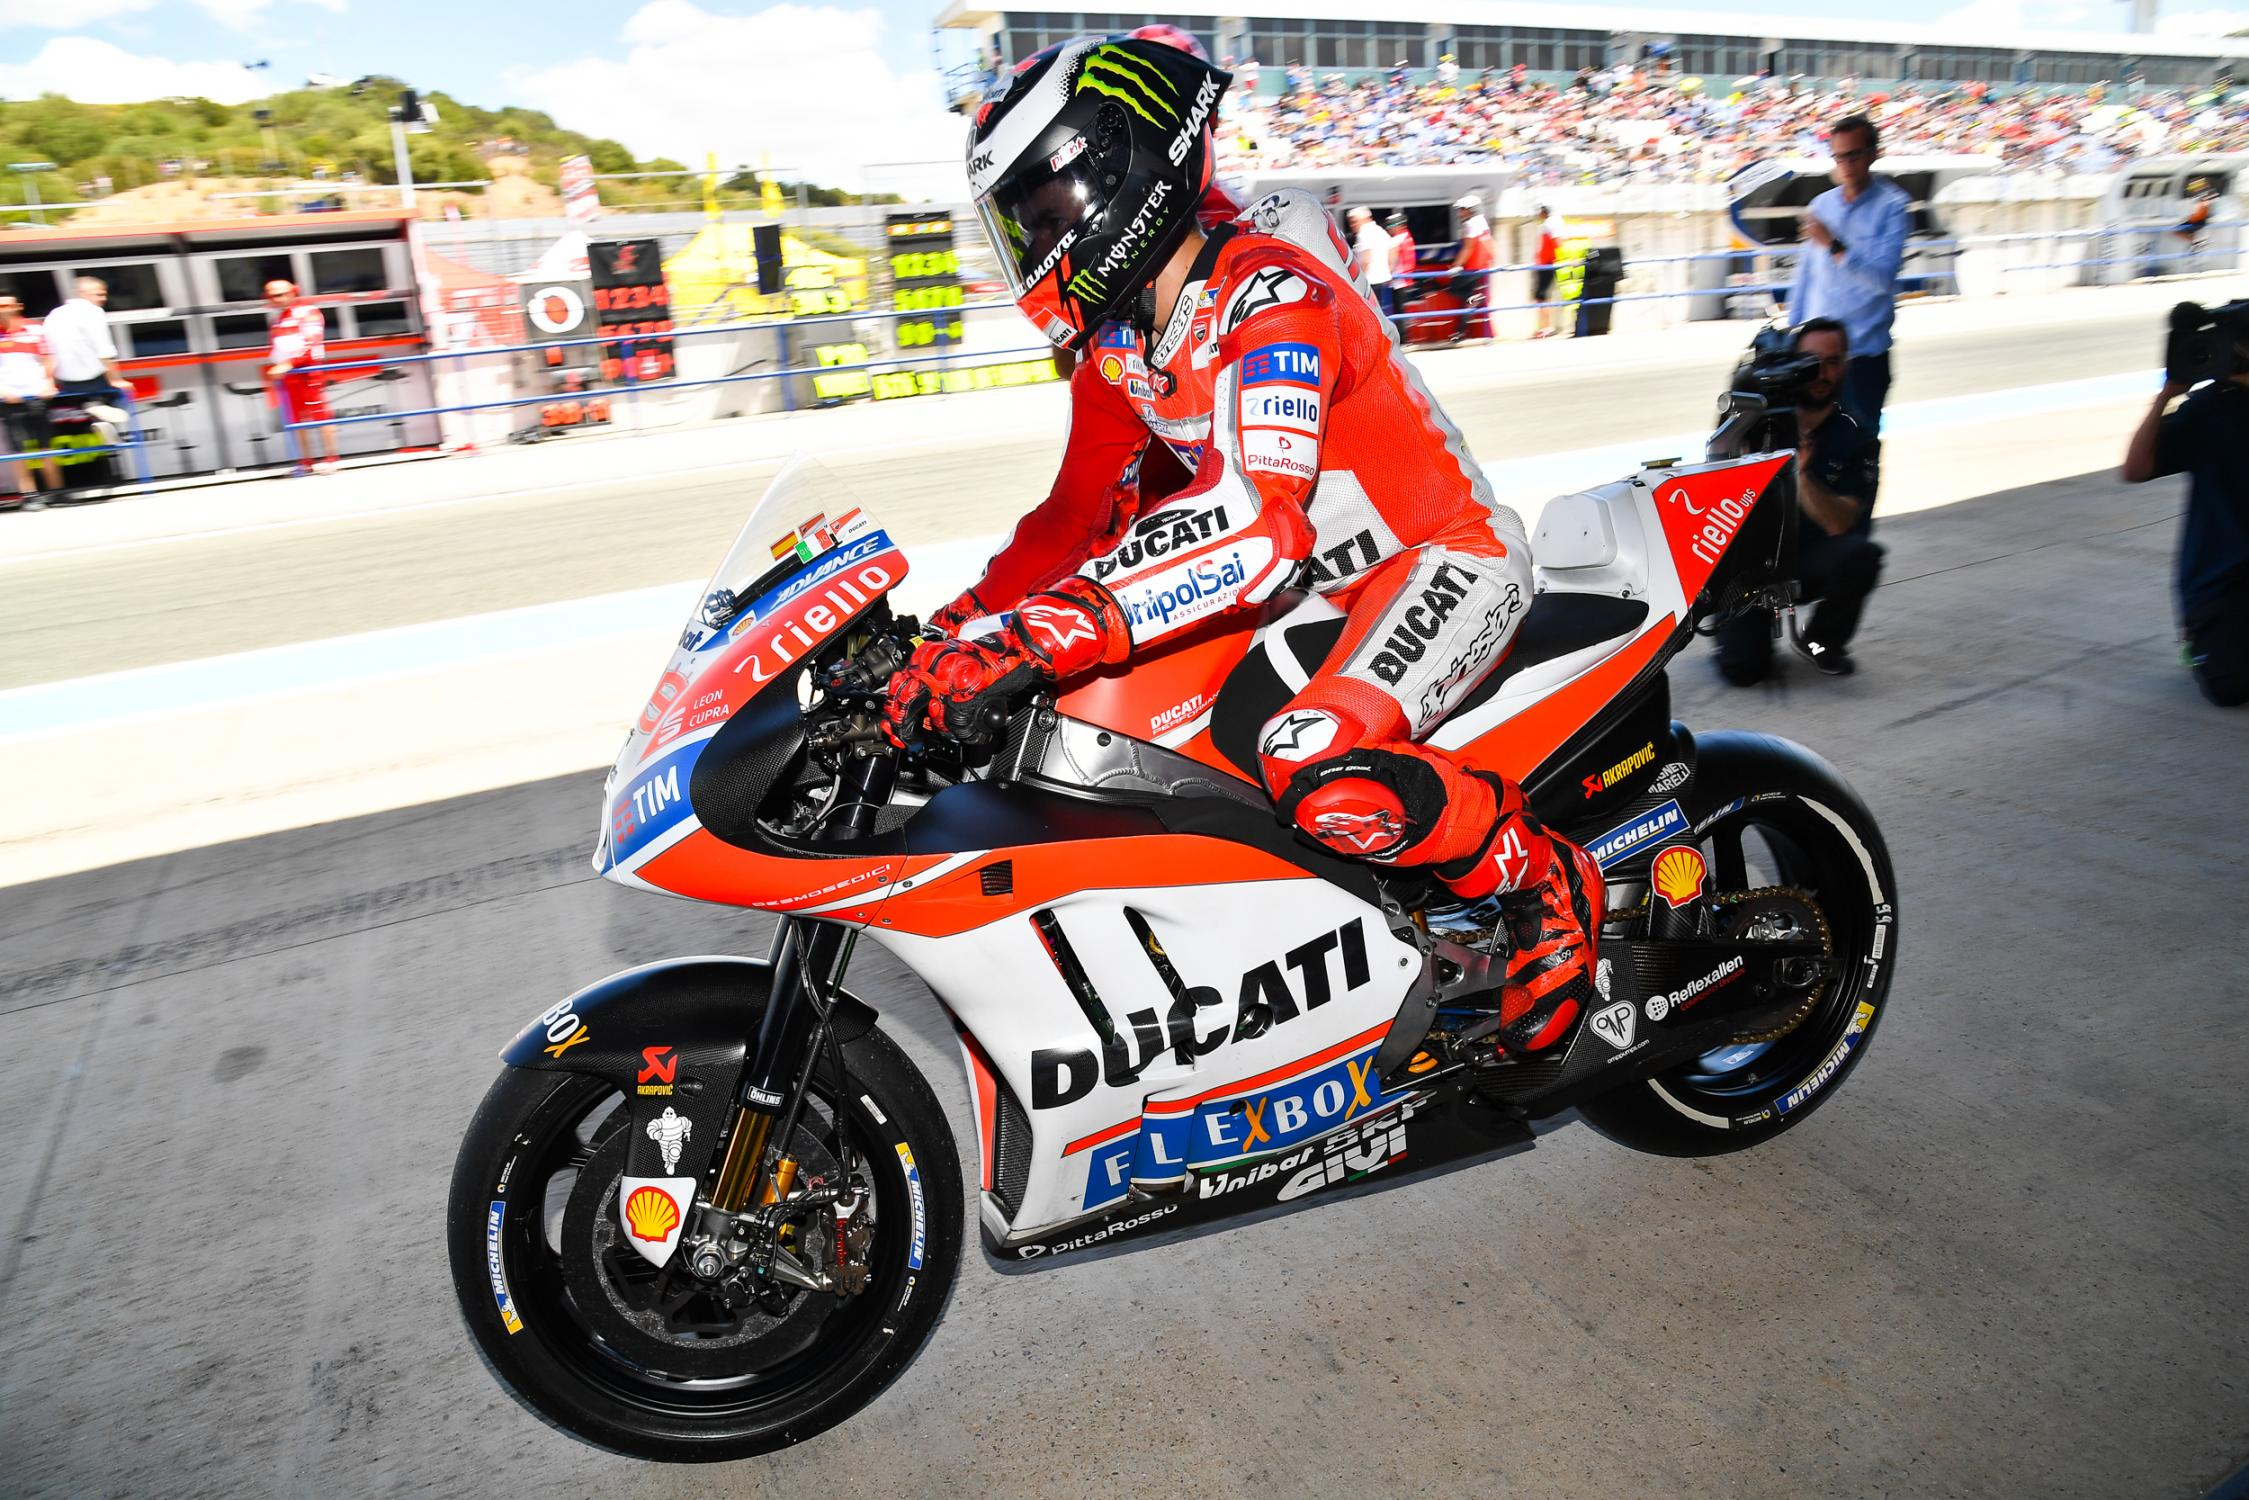 99-jorge-lorenzo-esplg5_2405.gallery_full_top_fullscreen.jpg